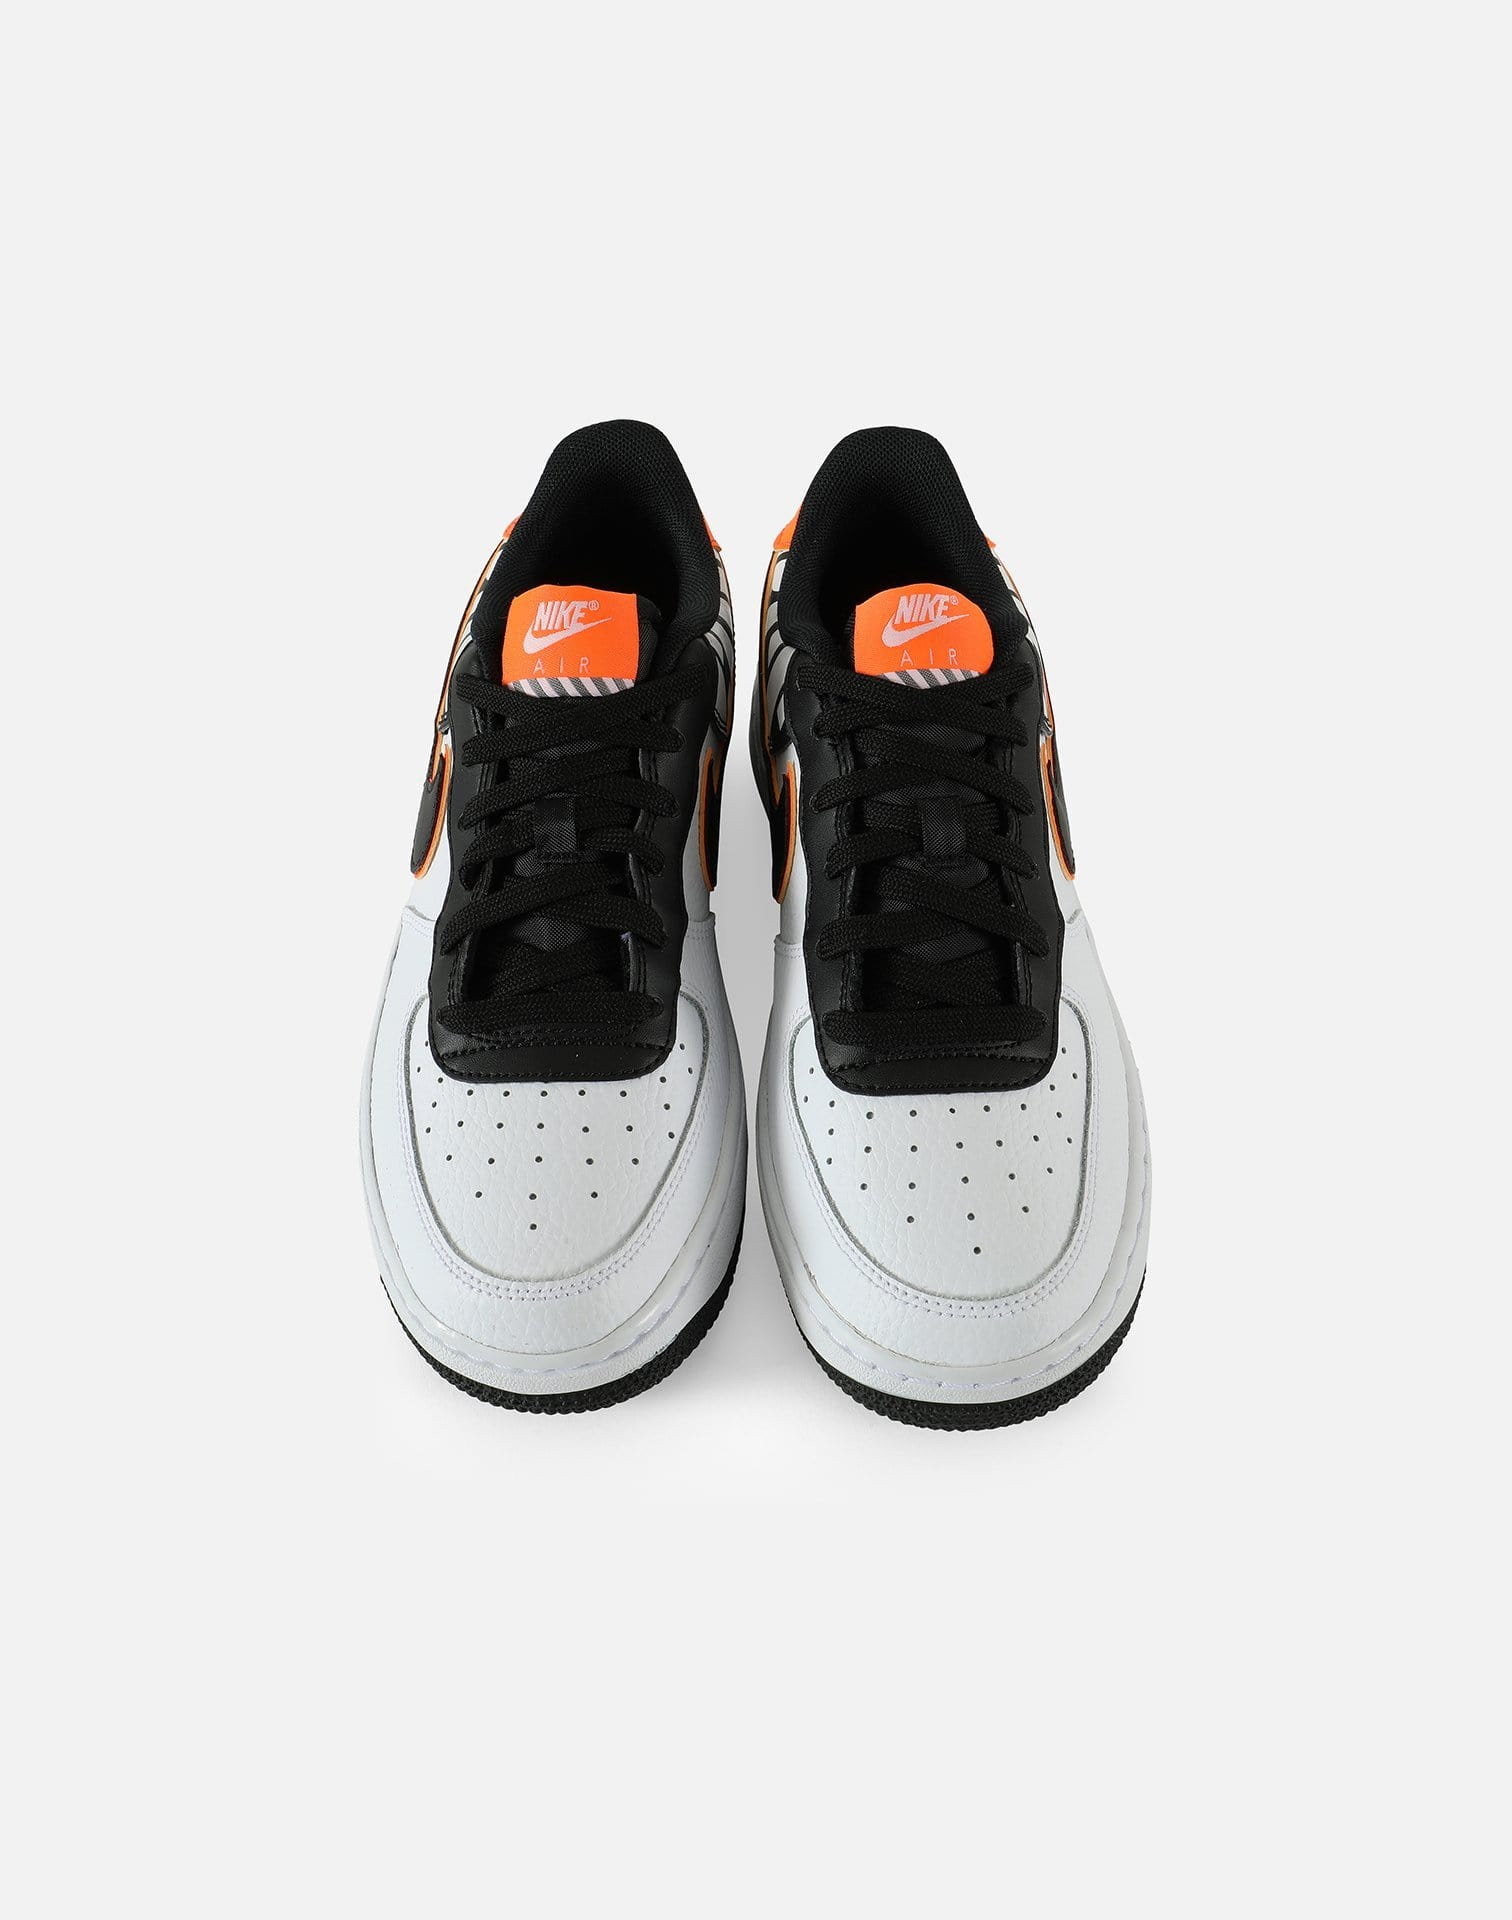 Nike Air Force 1 Low LV8 Grade-School